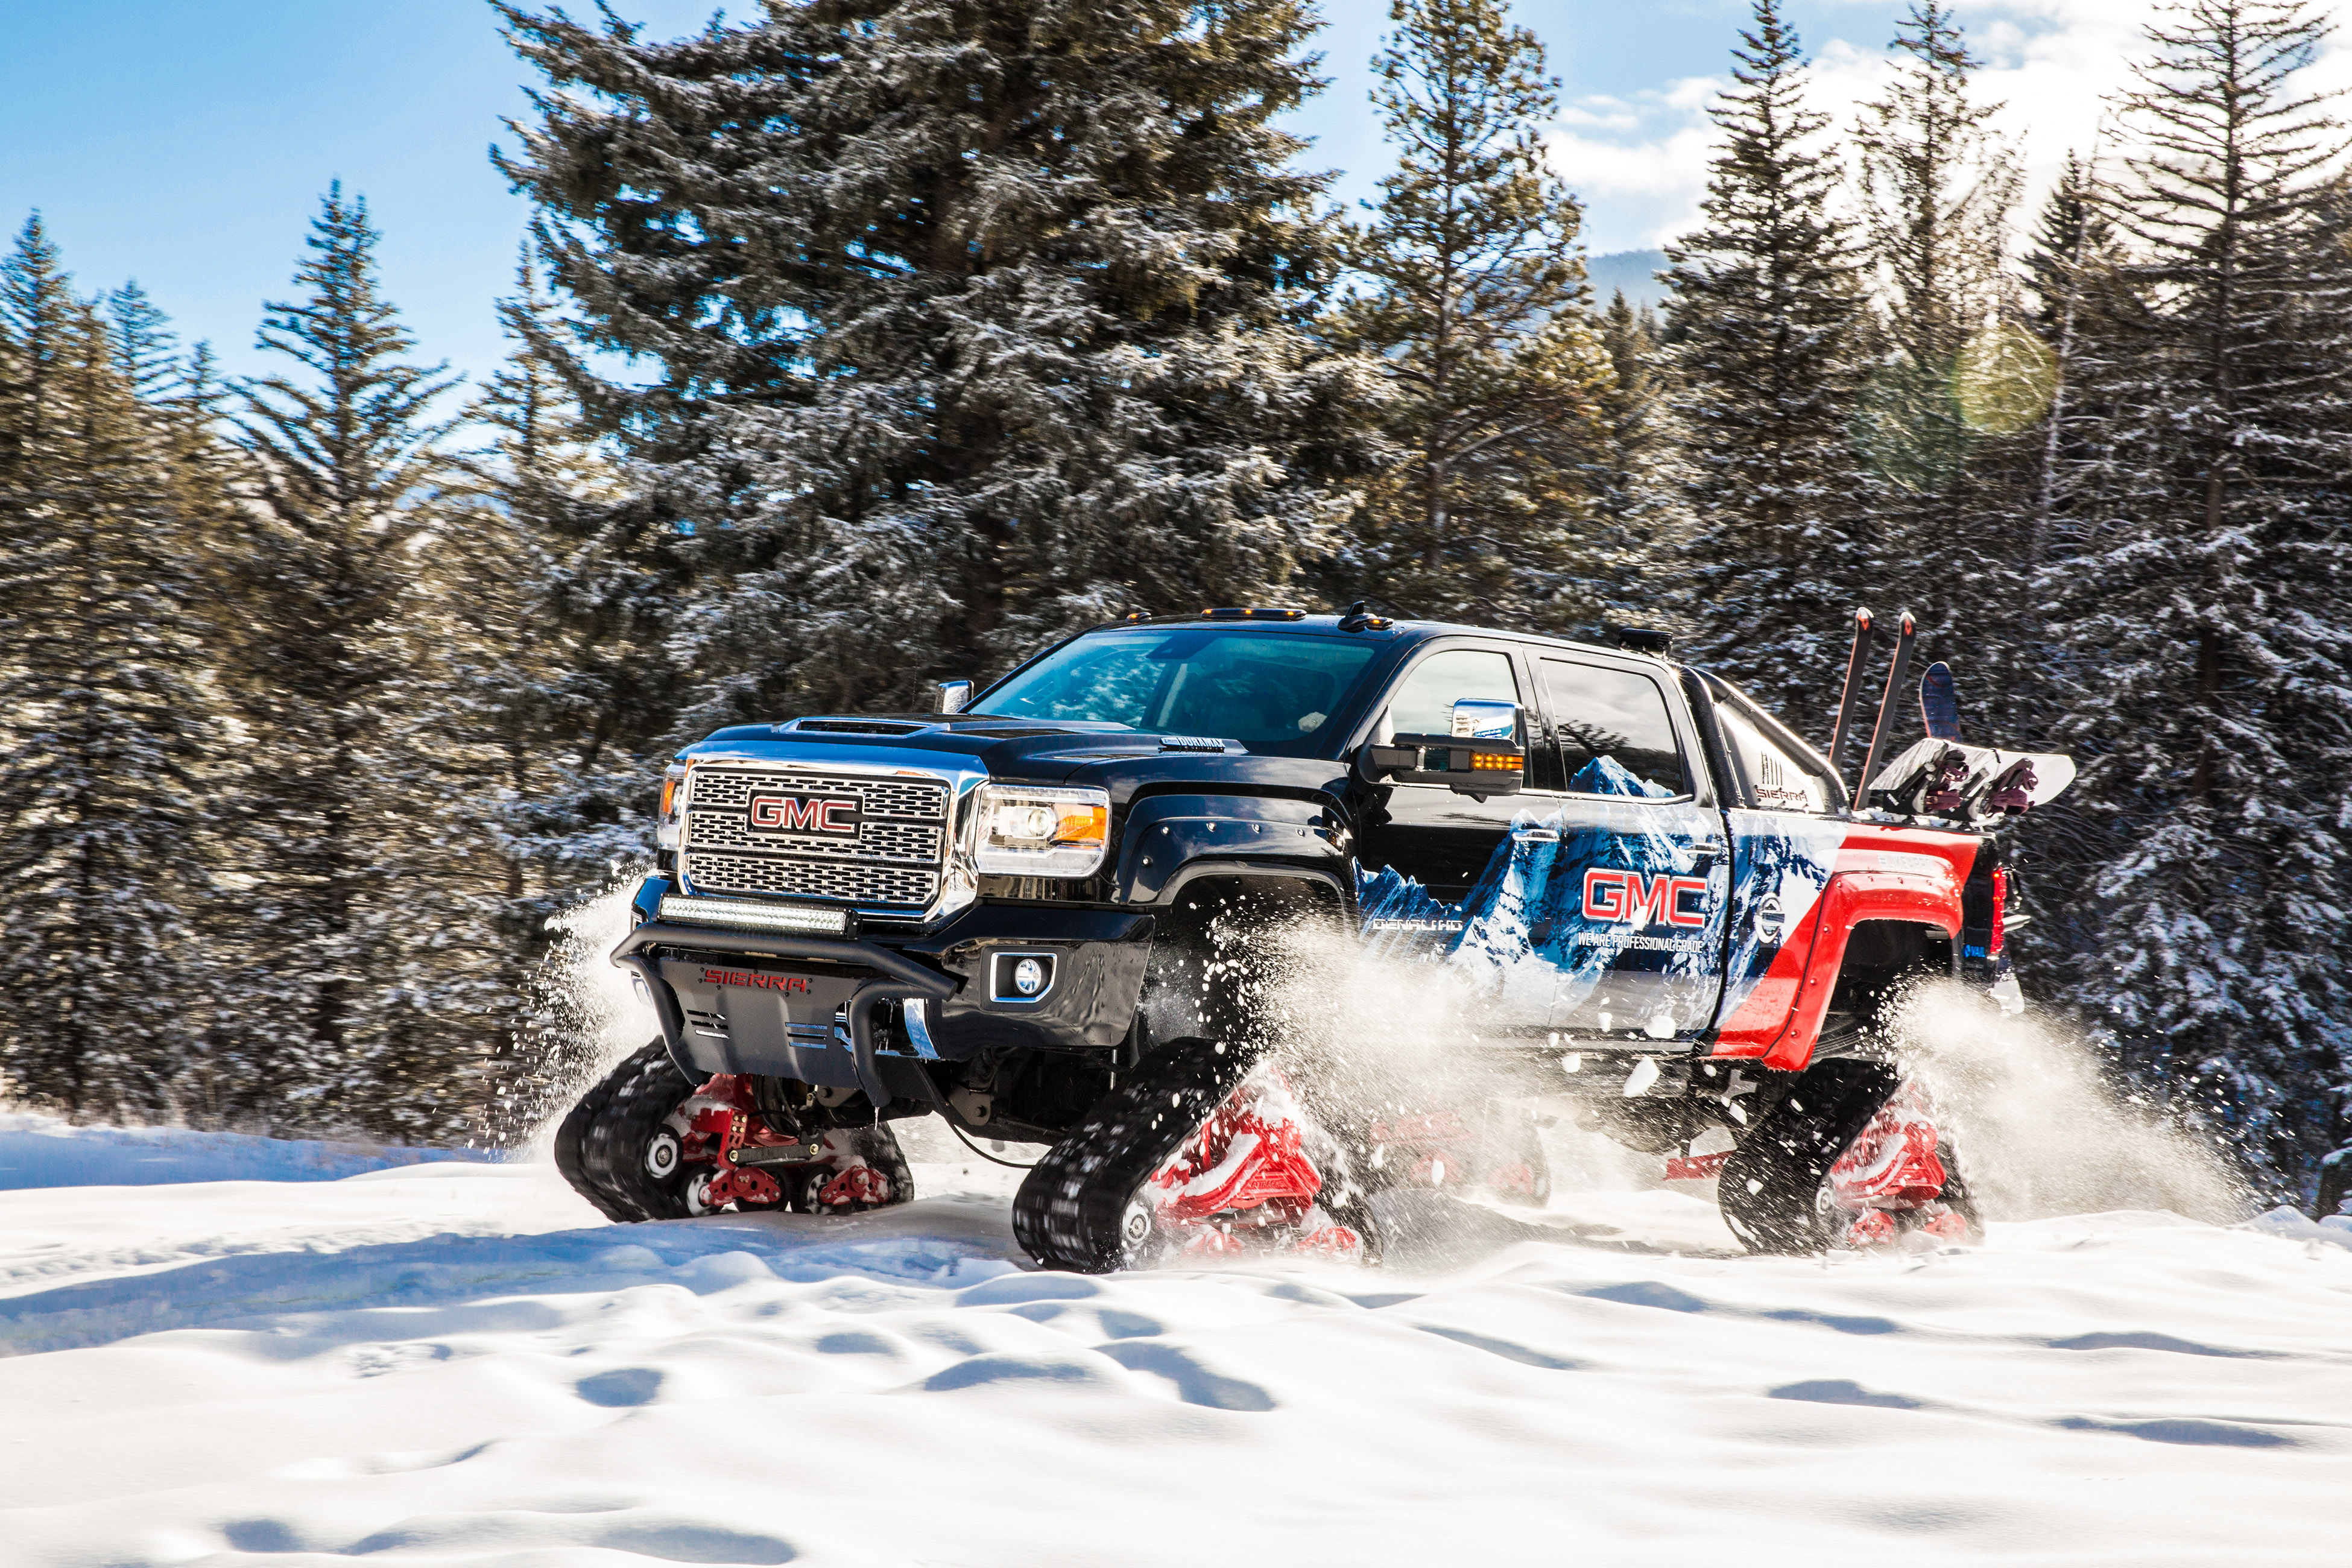 Gmc Sierra All Mountain Concept Conquers Uncharted Territory At Vail